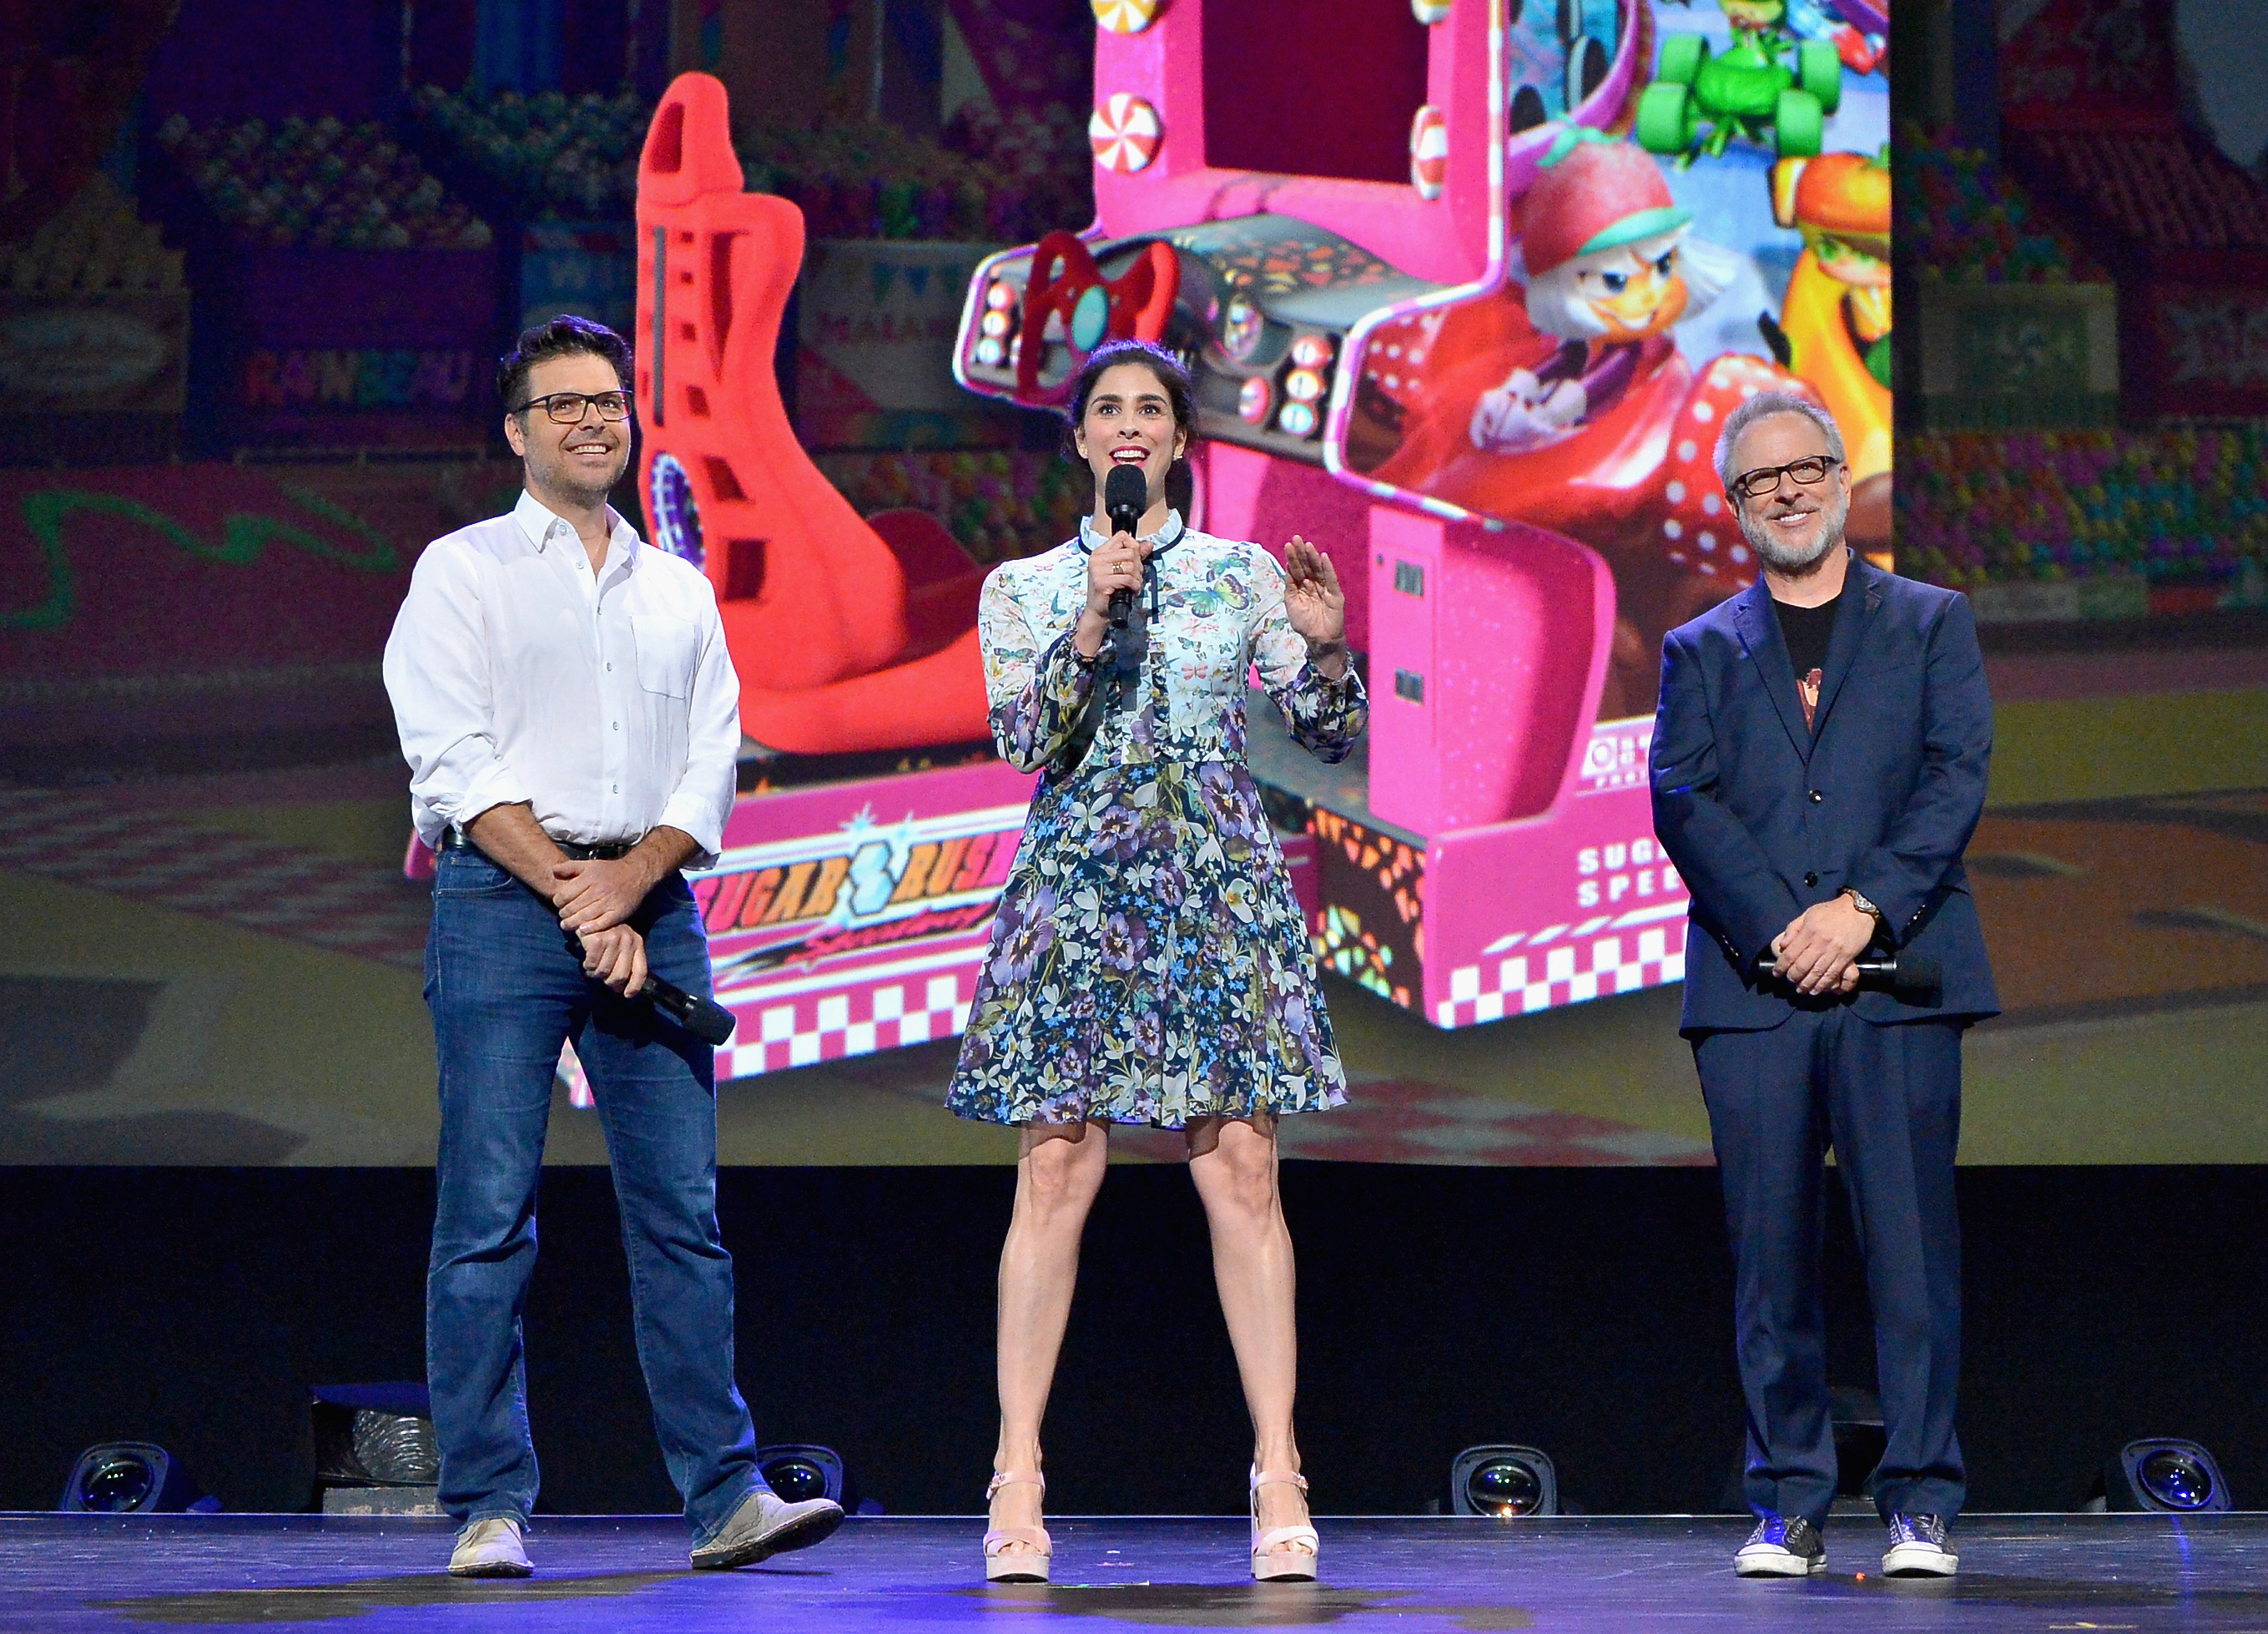 D23 Expo 2017 Recap: Disney and Pixar Animation